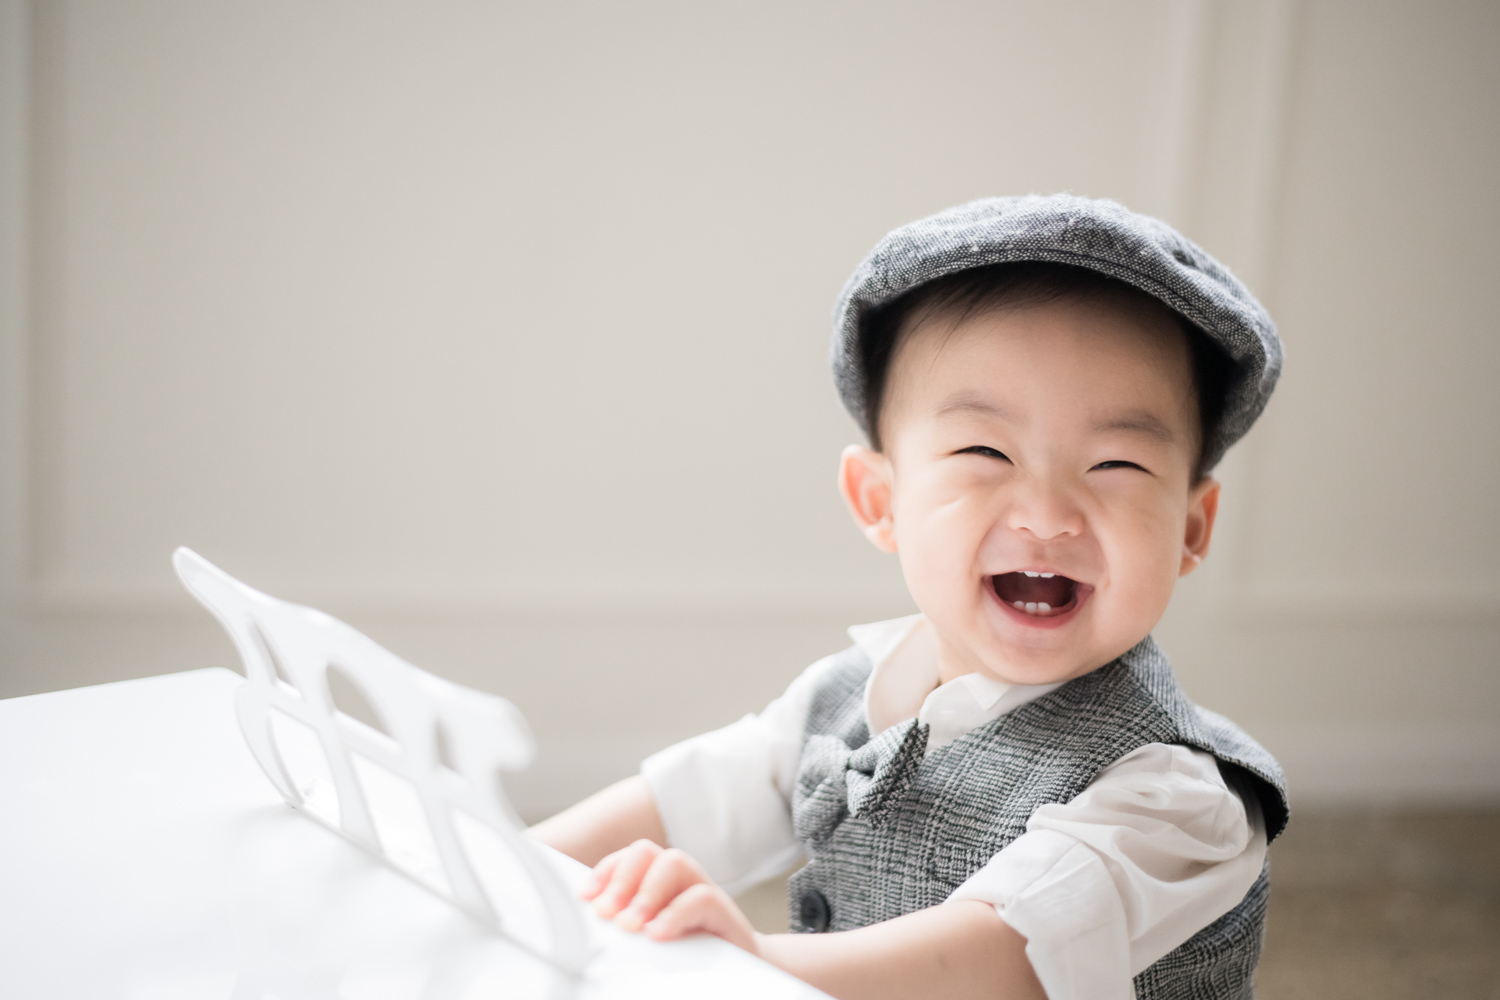 Toddler smiles from miniature piano during baby photo session.